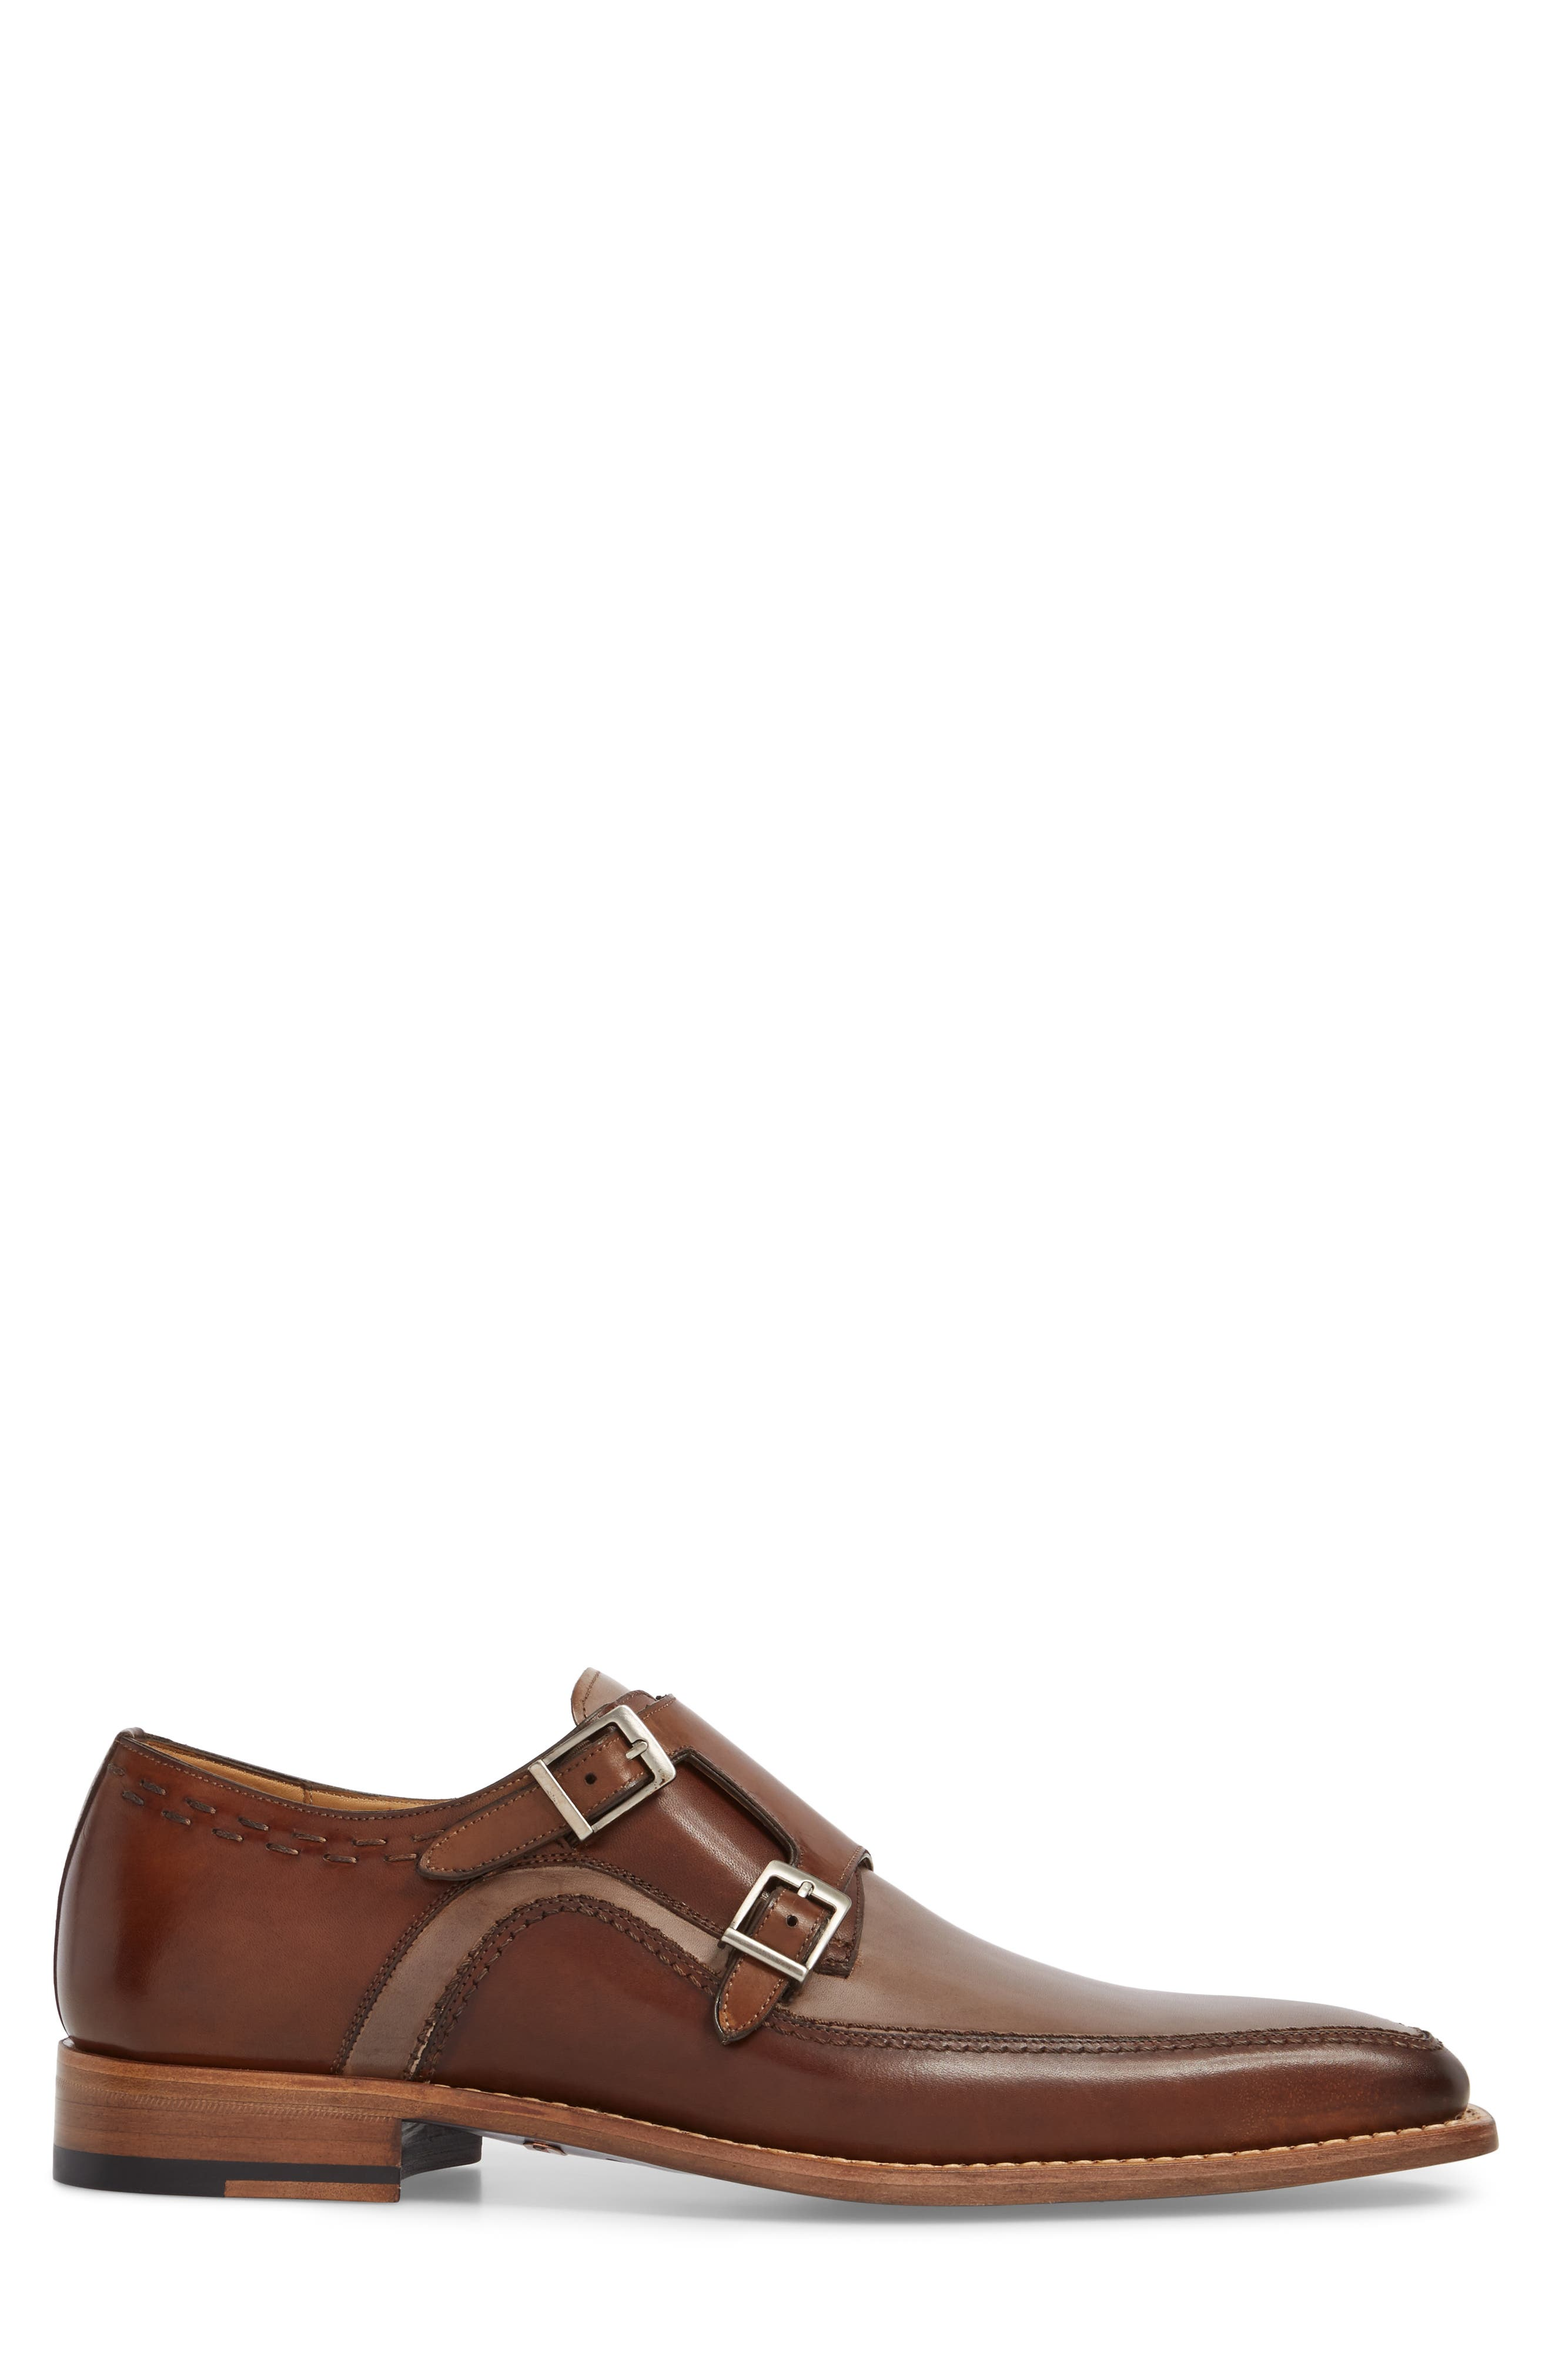 Magno Double Monk Strap Shoe,                             Alternate thumbnail 3, color,                             Brown Leather